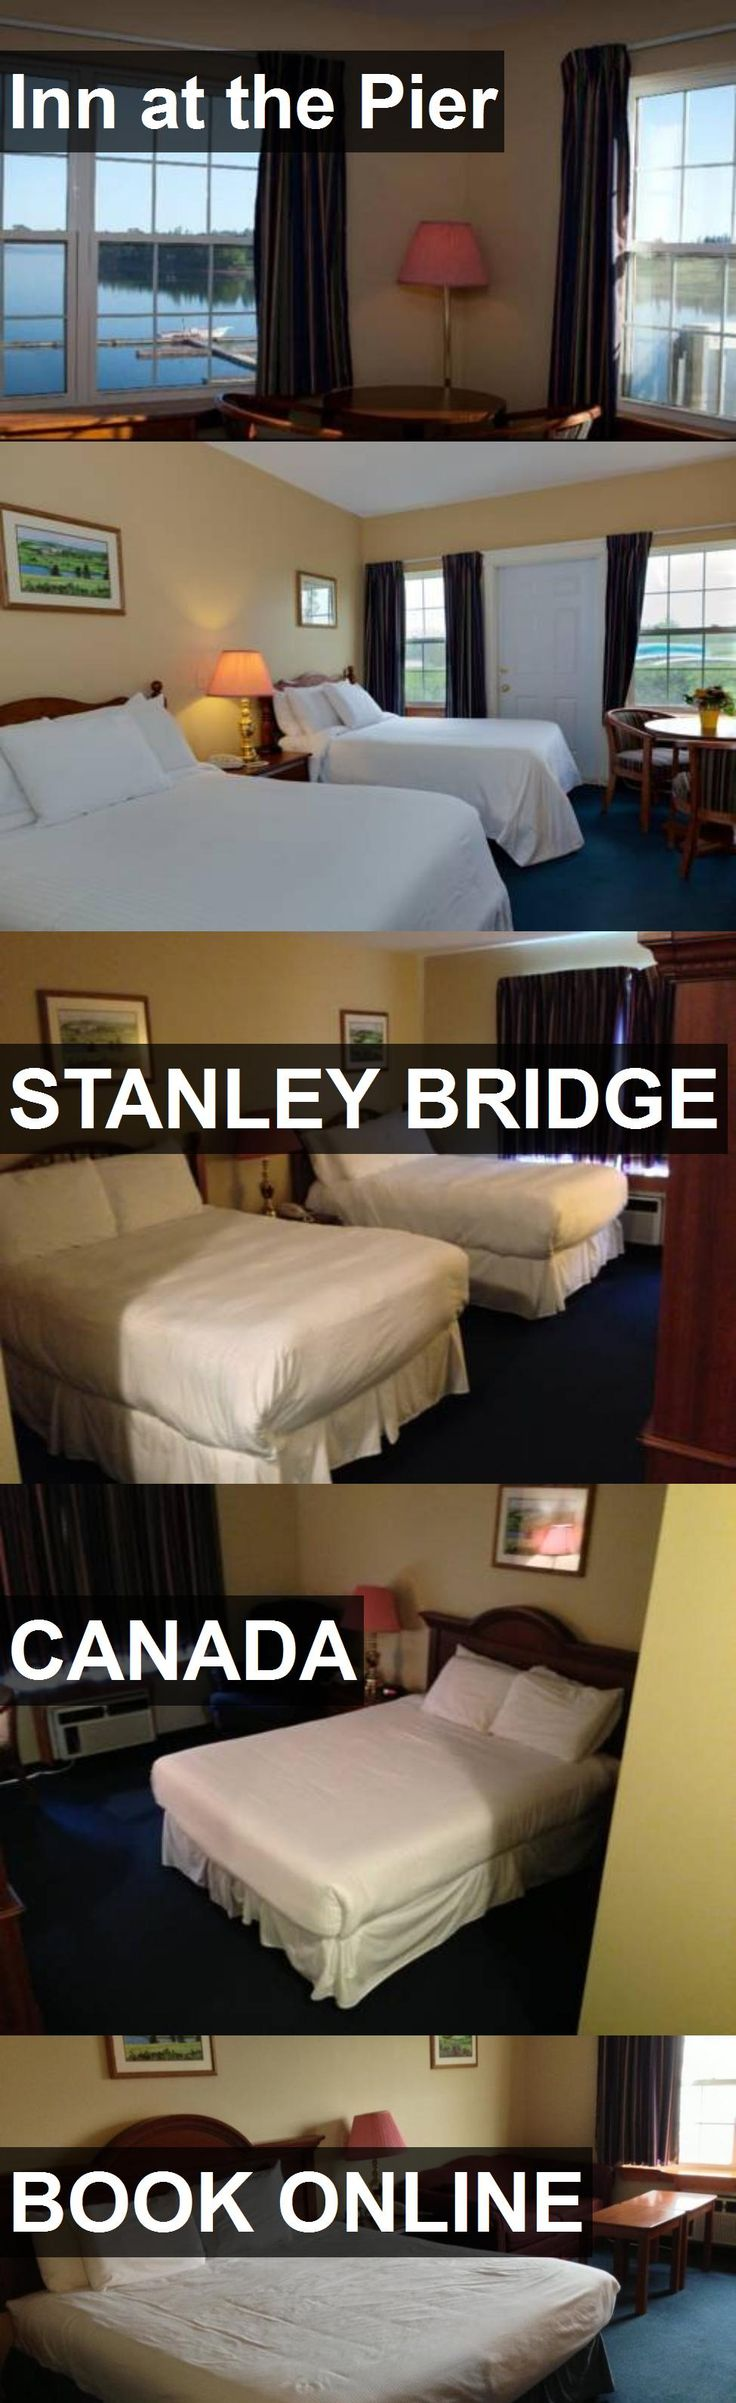 Hotel Inn at the Pier in Stanley Bridge, Canada. For more information, photos, reviews and best prices please follow the link. #Canada #StanleyBridge #travel #vacation #hotel